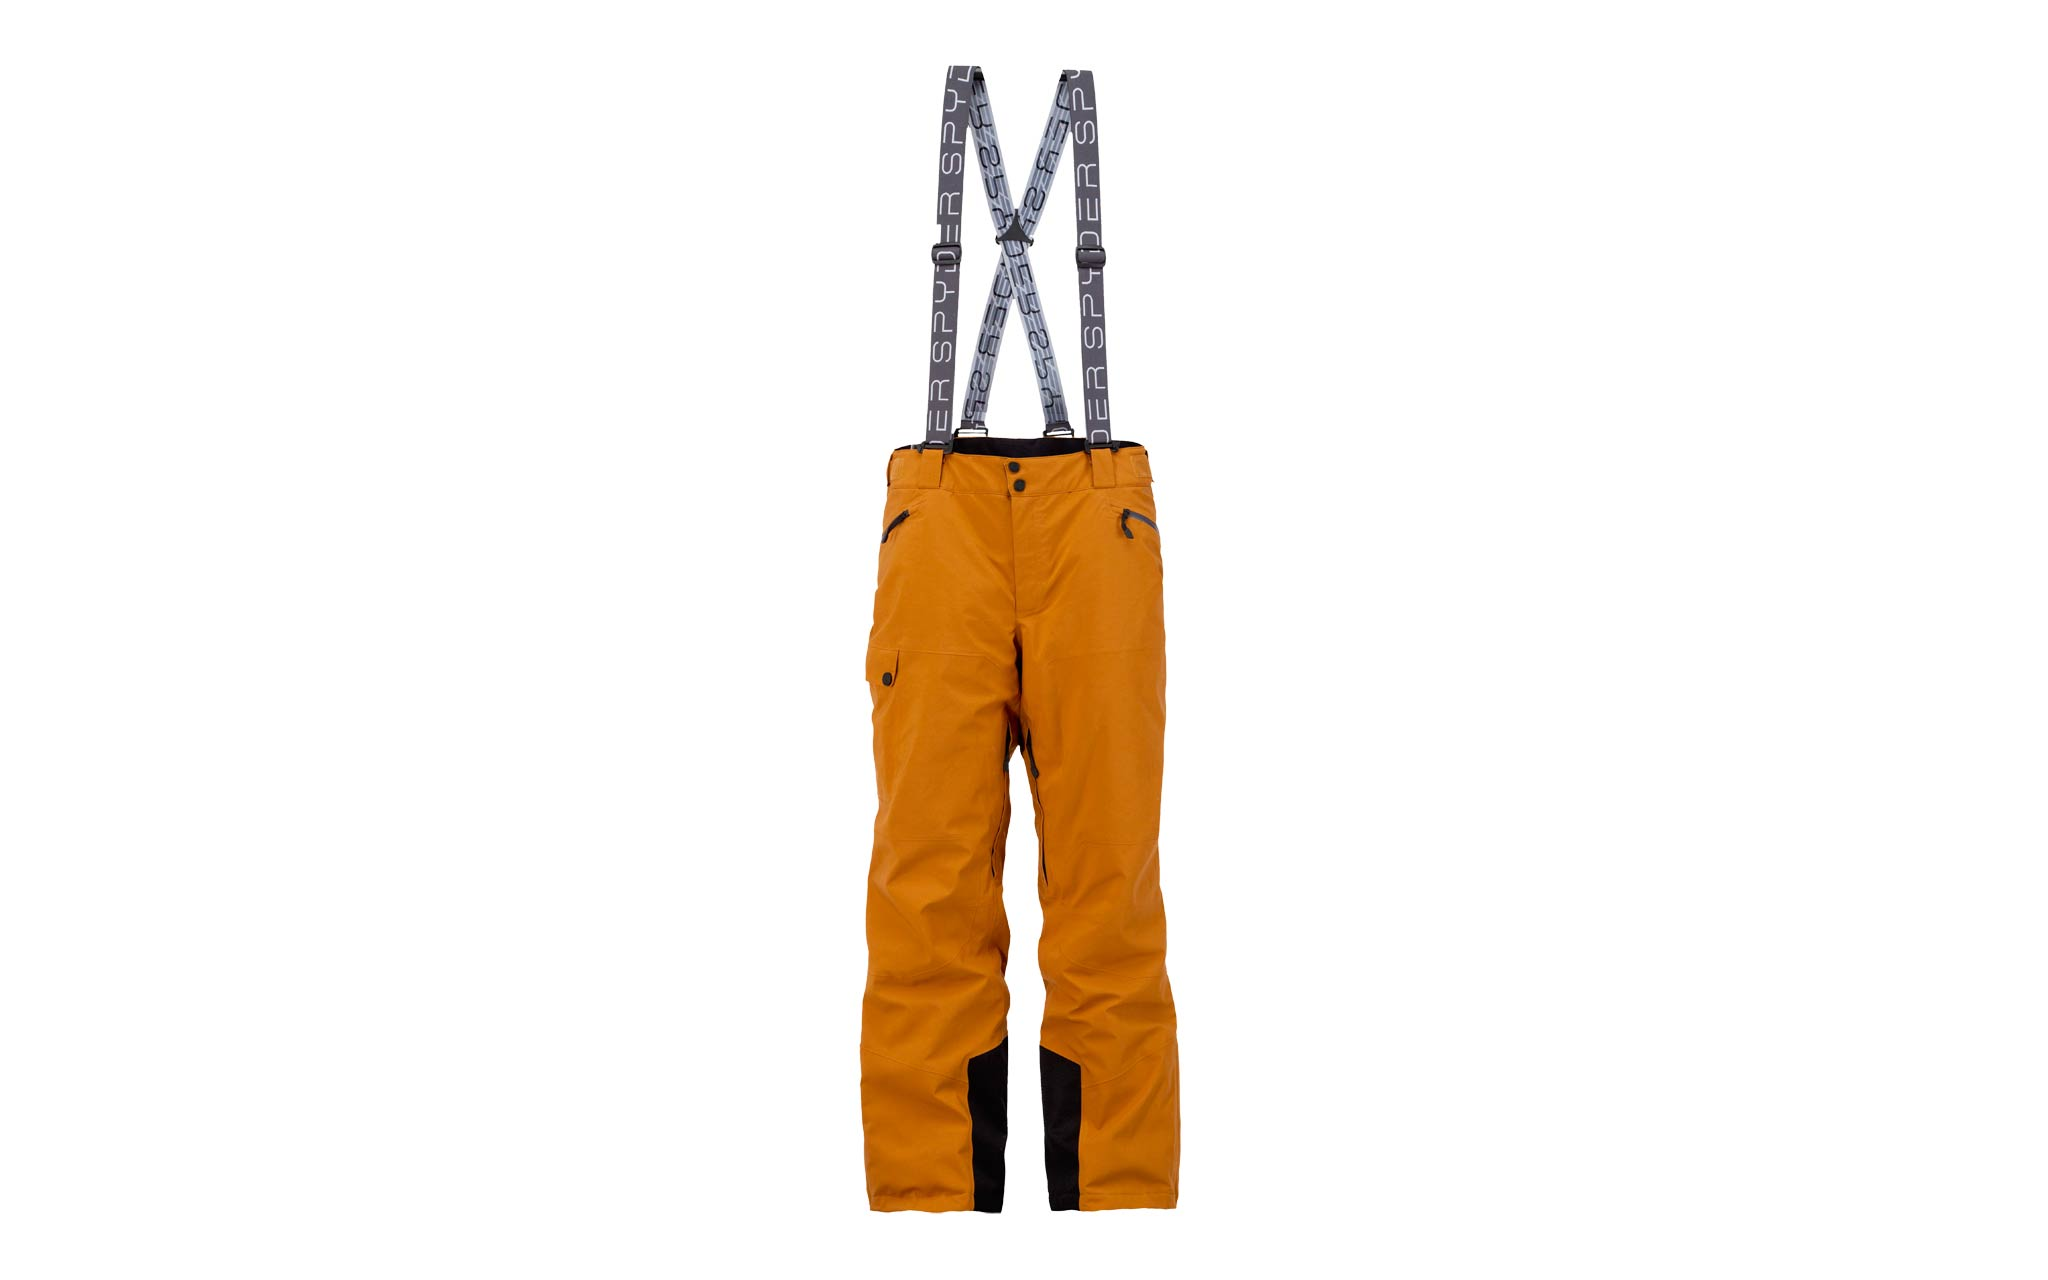 Spyder The Seventy Pants